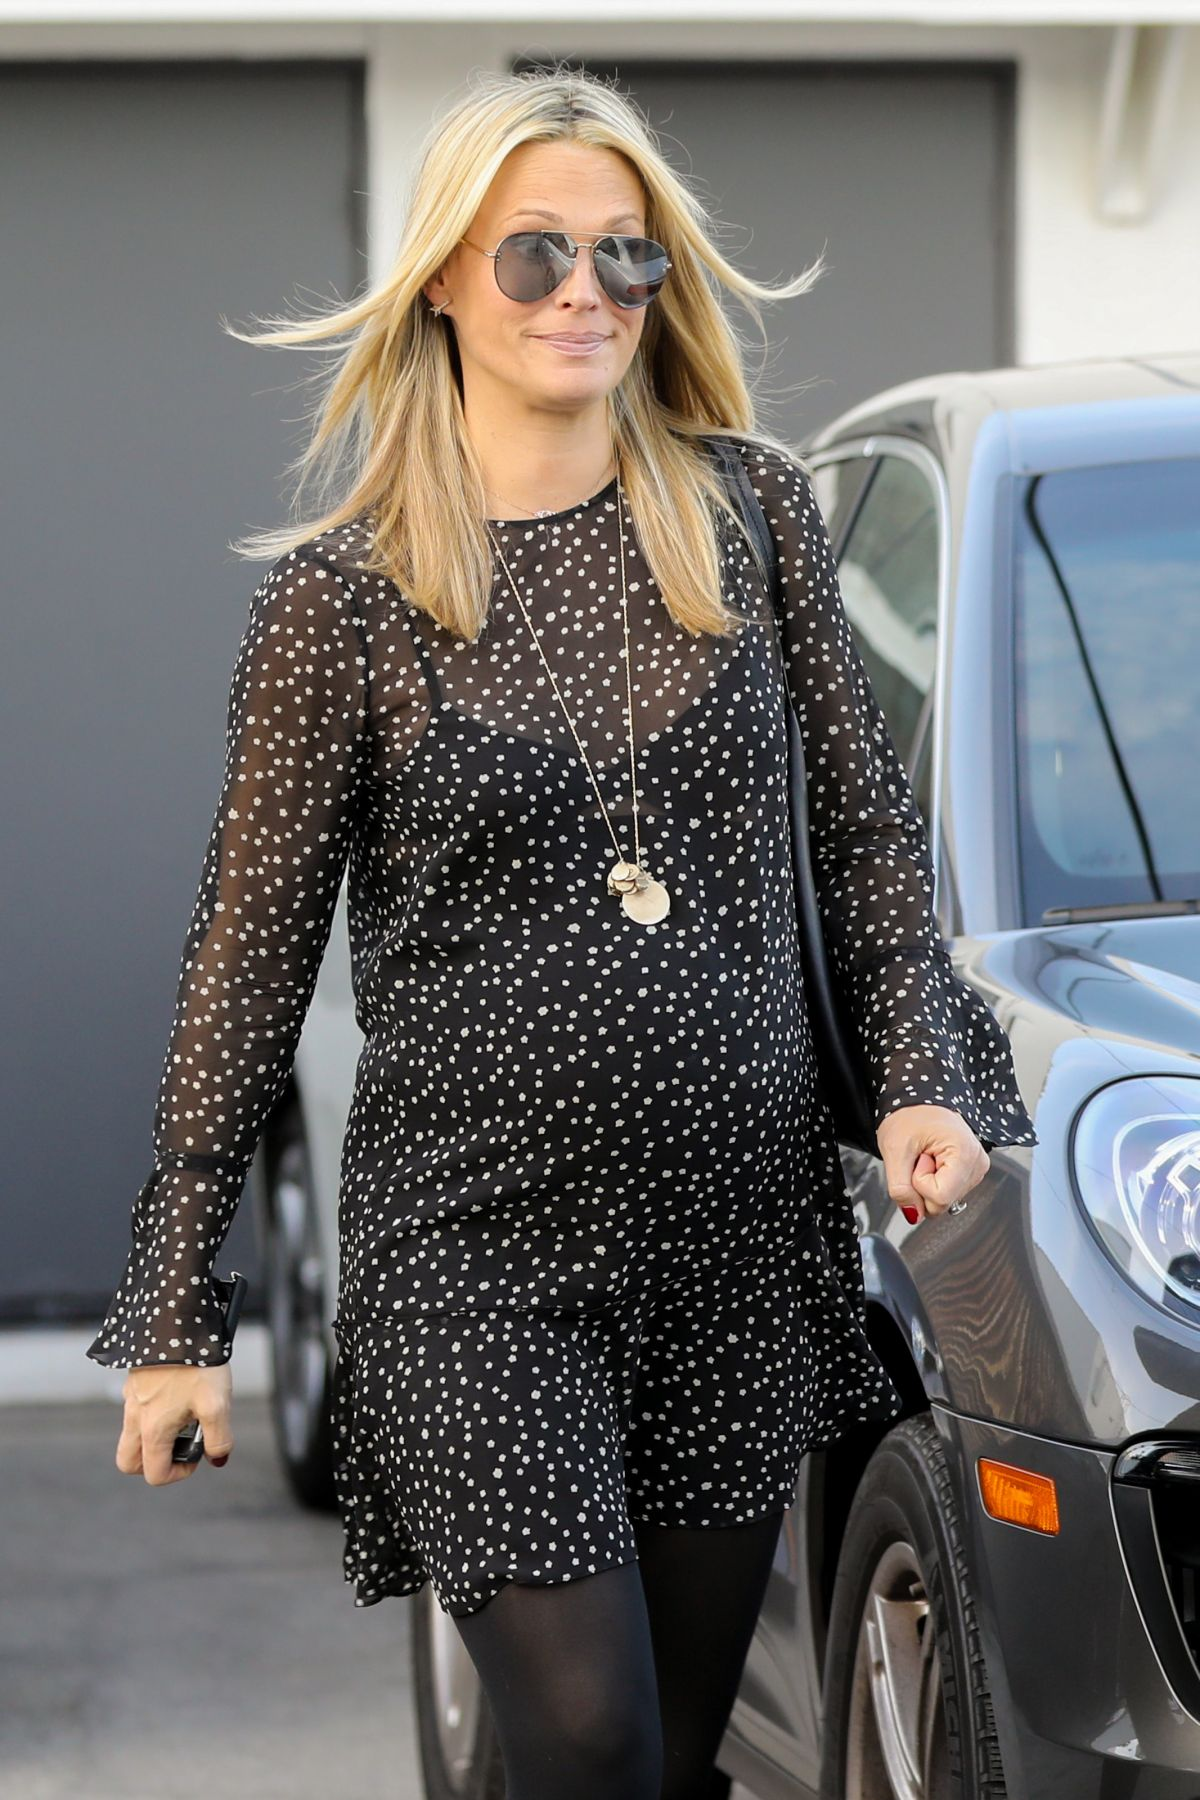 Pregnant Molly Sims Leaves A Hair Salon In Beverly Hills 01 06